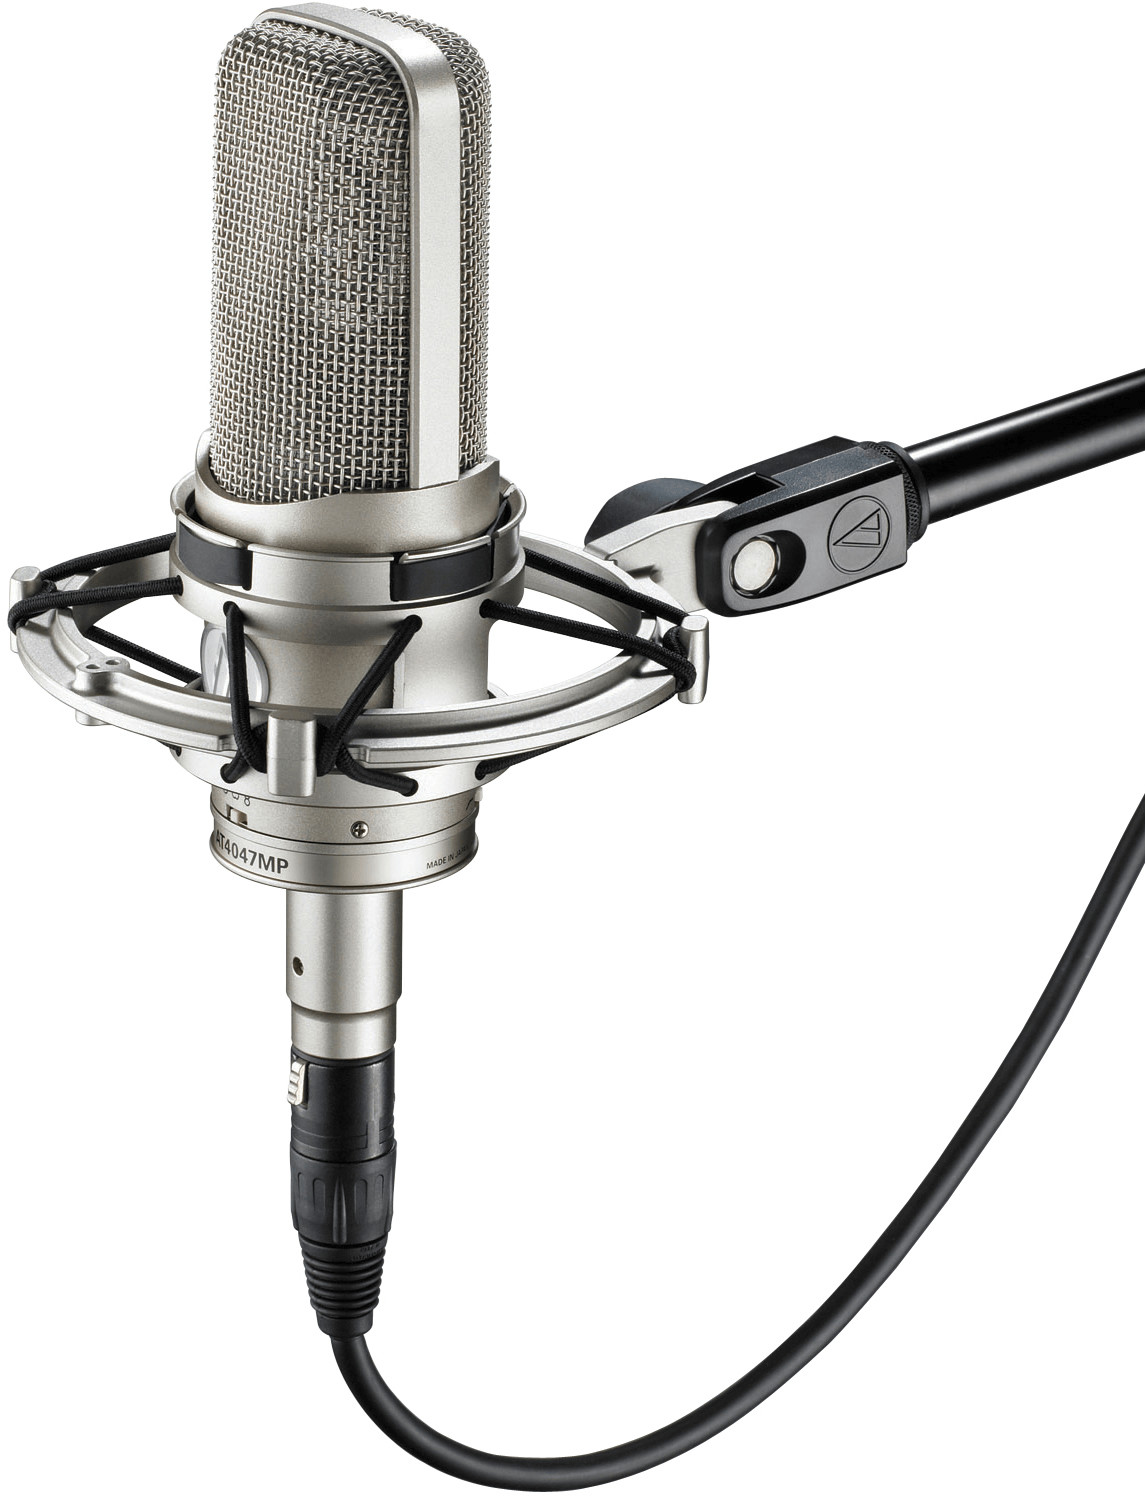 Image of Audio Technica AT4047MP